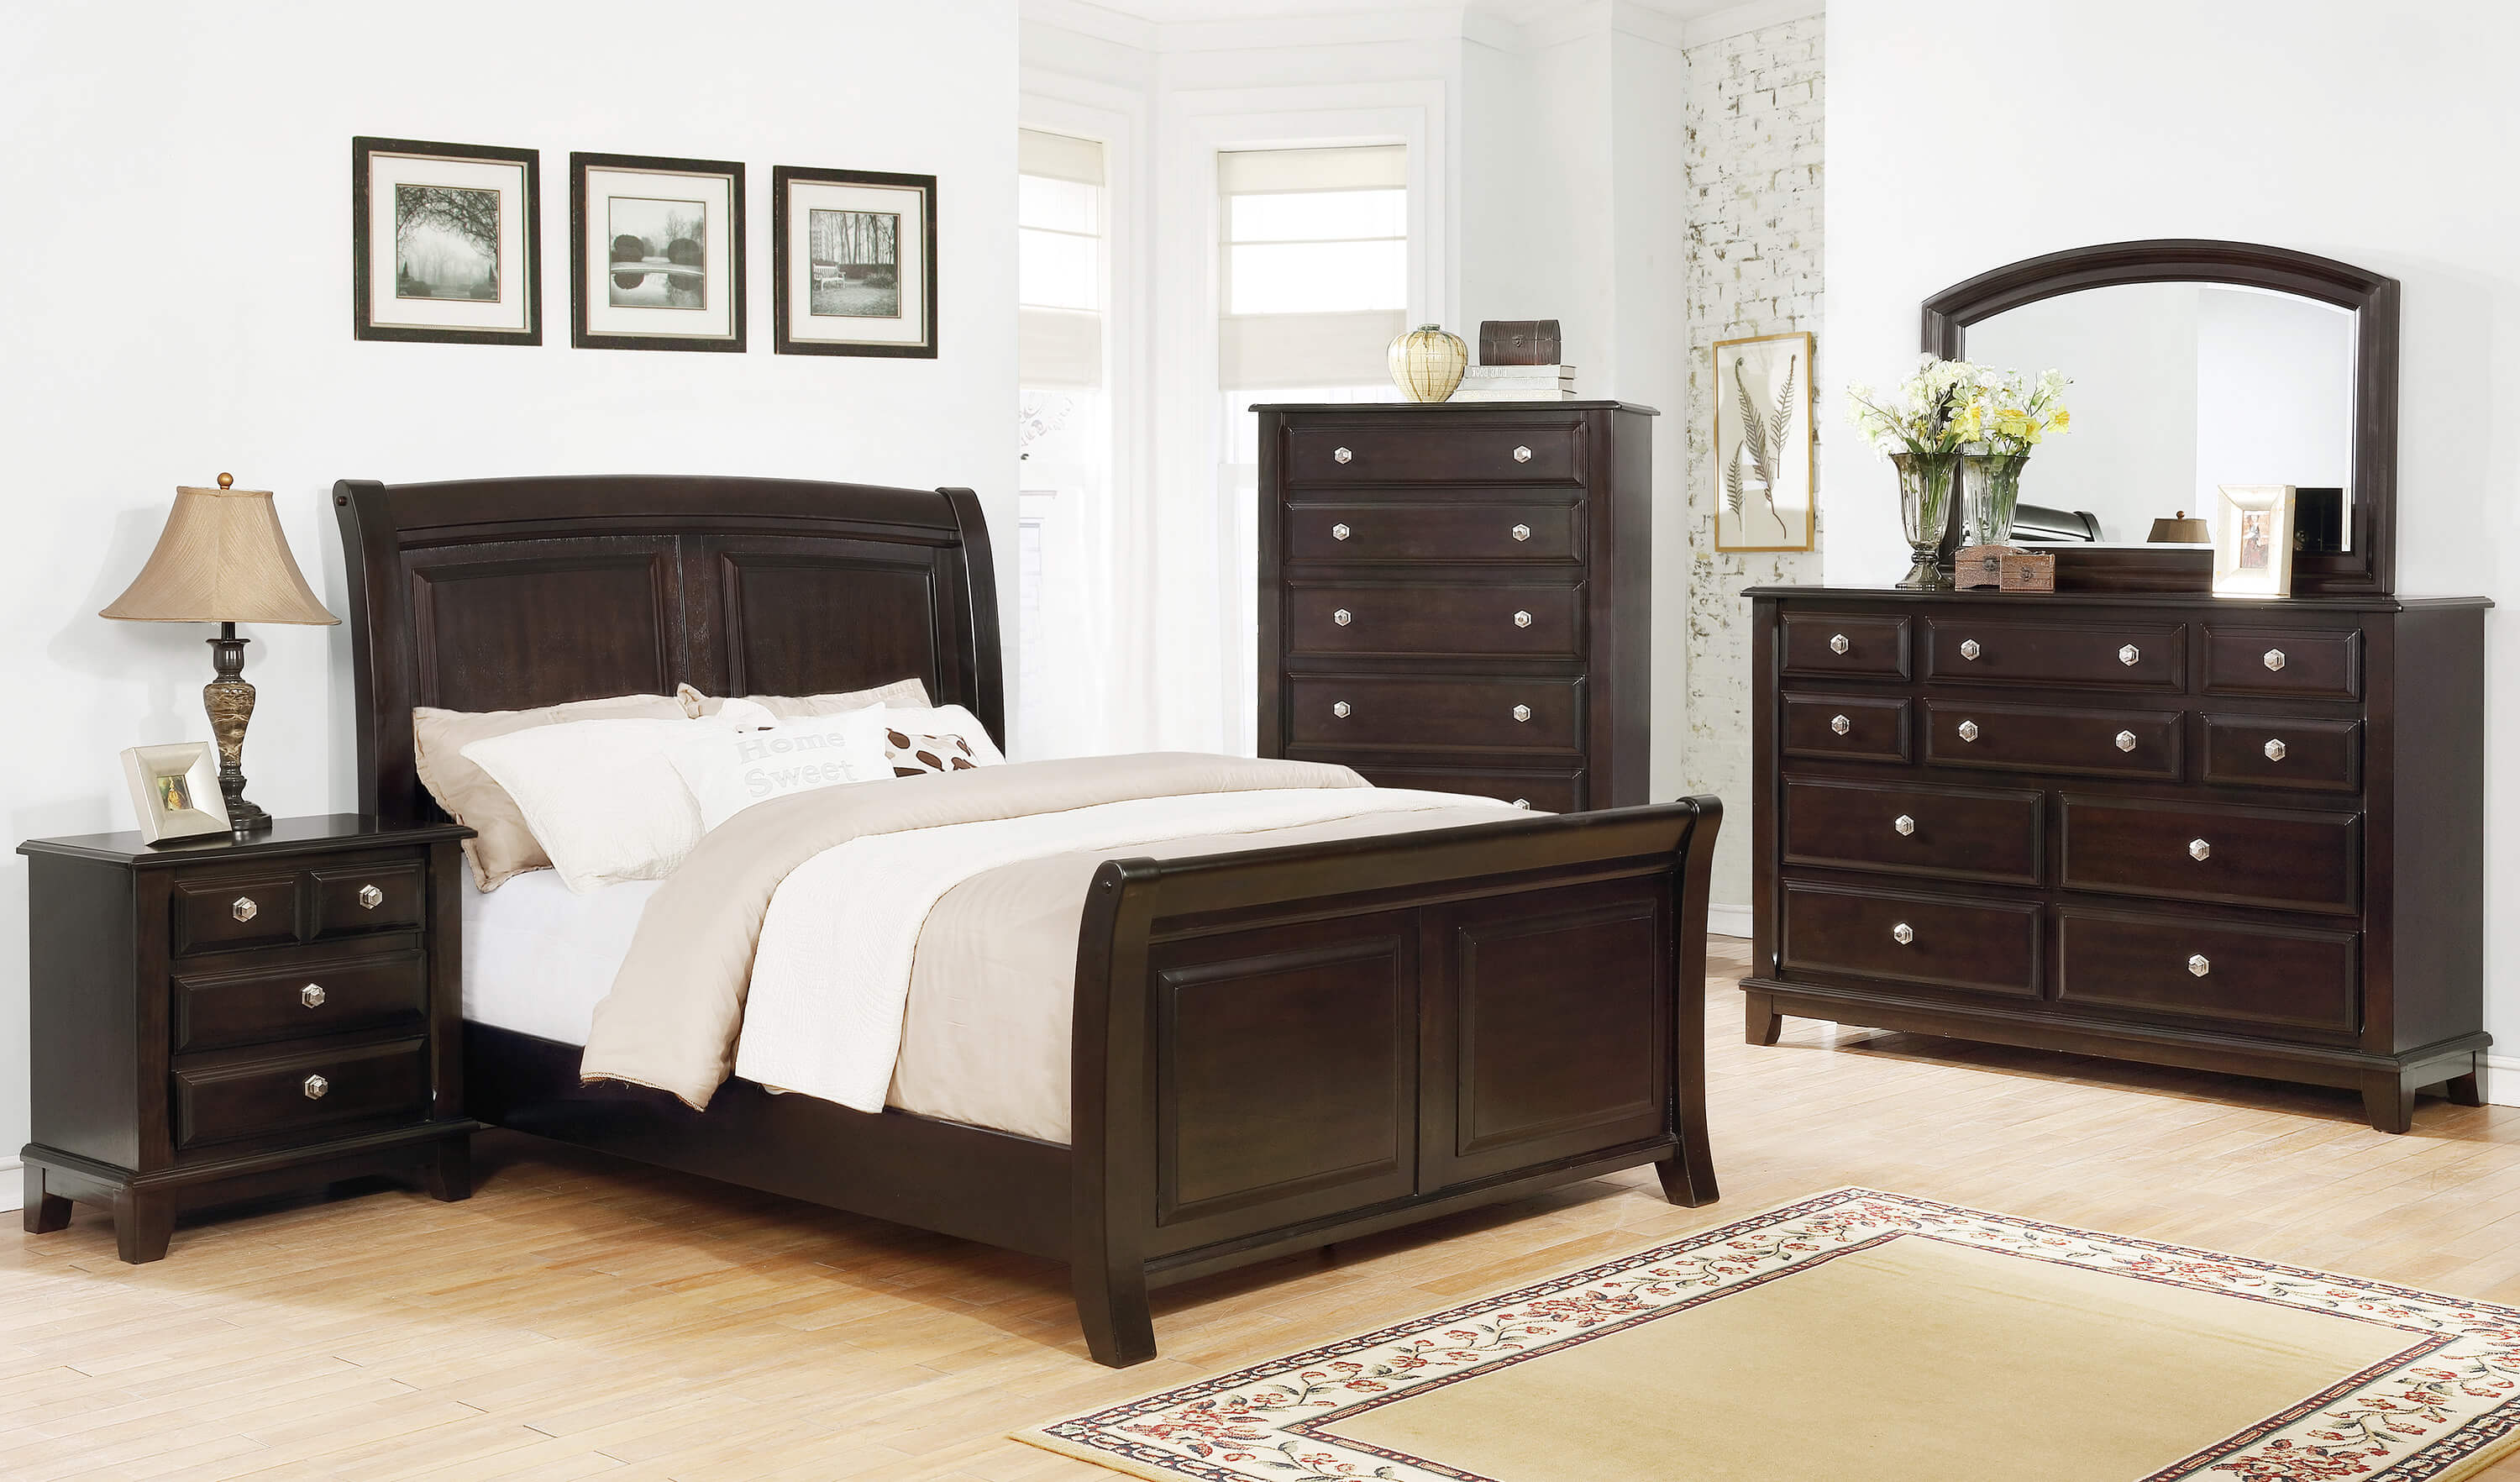 awesome set of sets furniture new intended wood design cherry elegant bedroom bedrooms